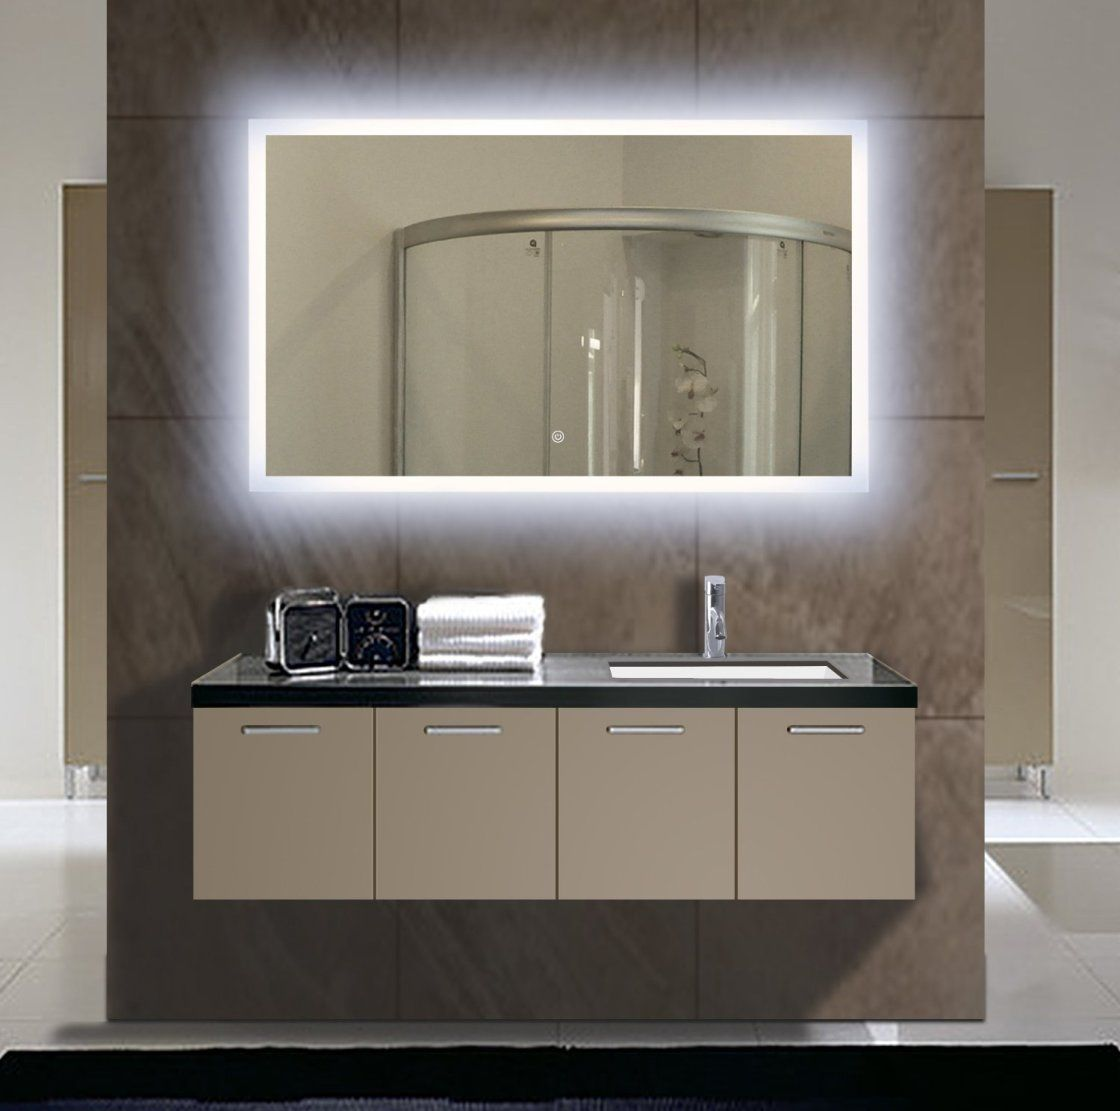 Most Popular Vanity Mirror Ideas Awesome Vanity Mirror Vanity Mirror Ideas Luxurybathroo Bathroom Mirror Design Diy Vanity Mirror Unique Bathroom Mirrors Popular bathroom mirror with